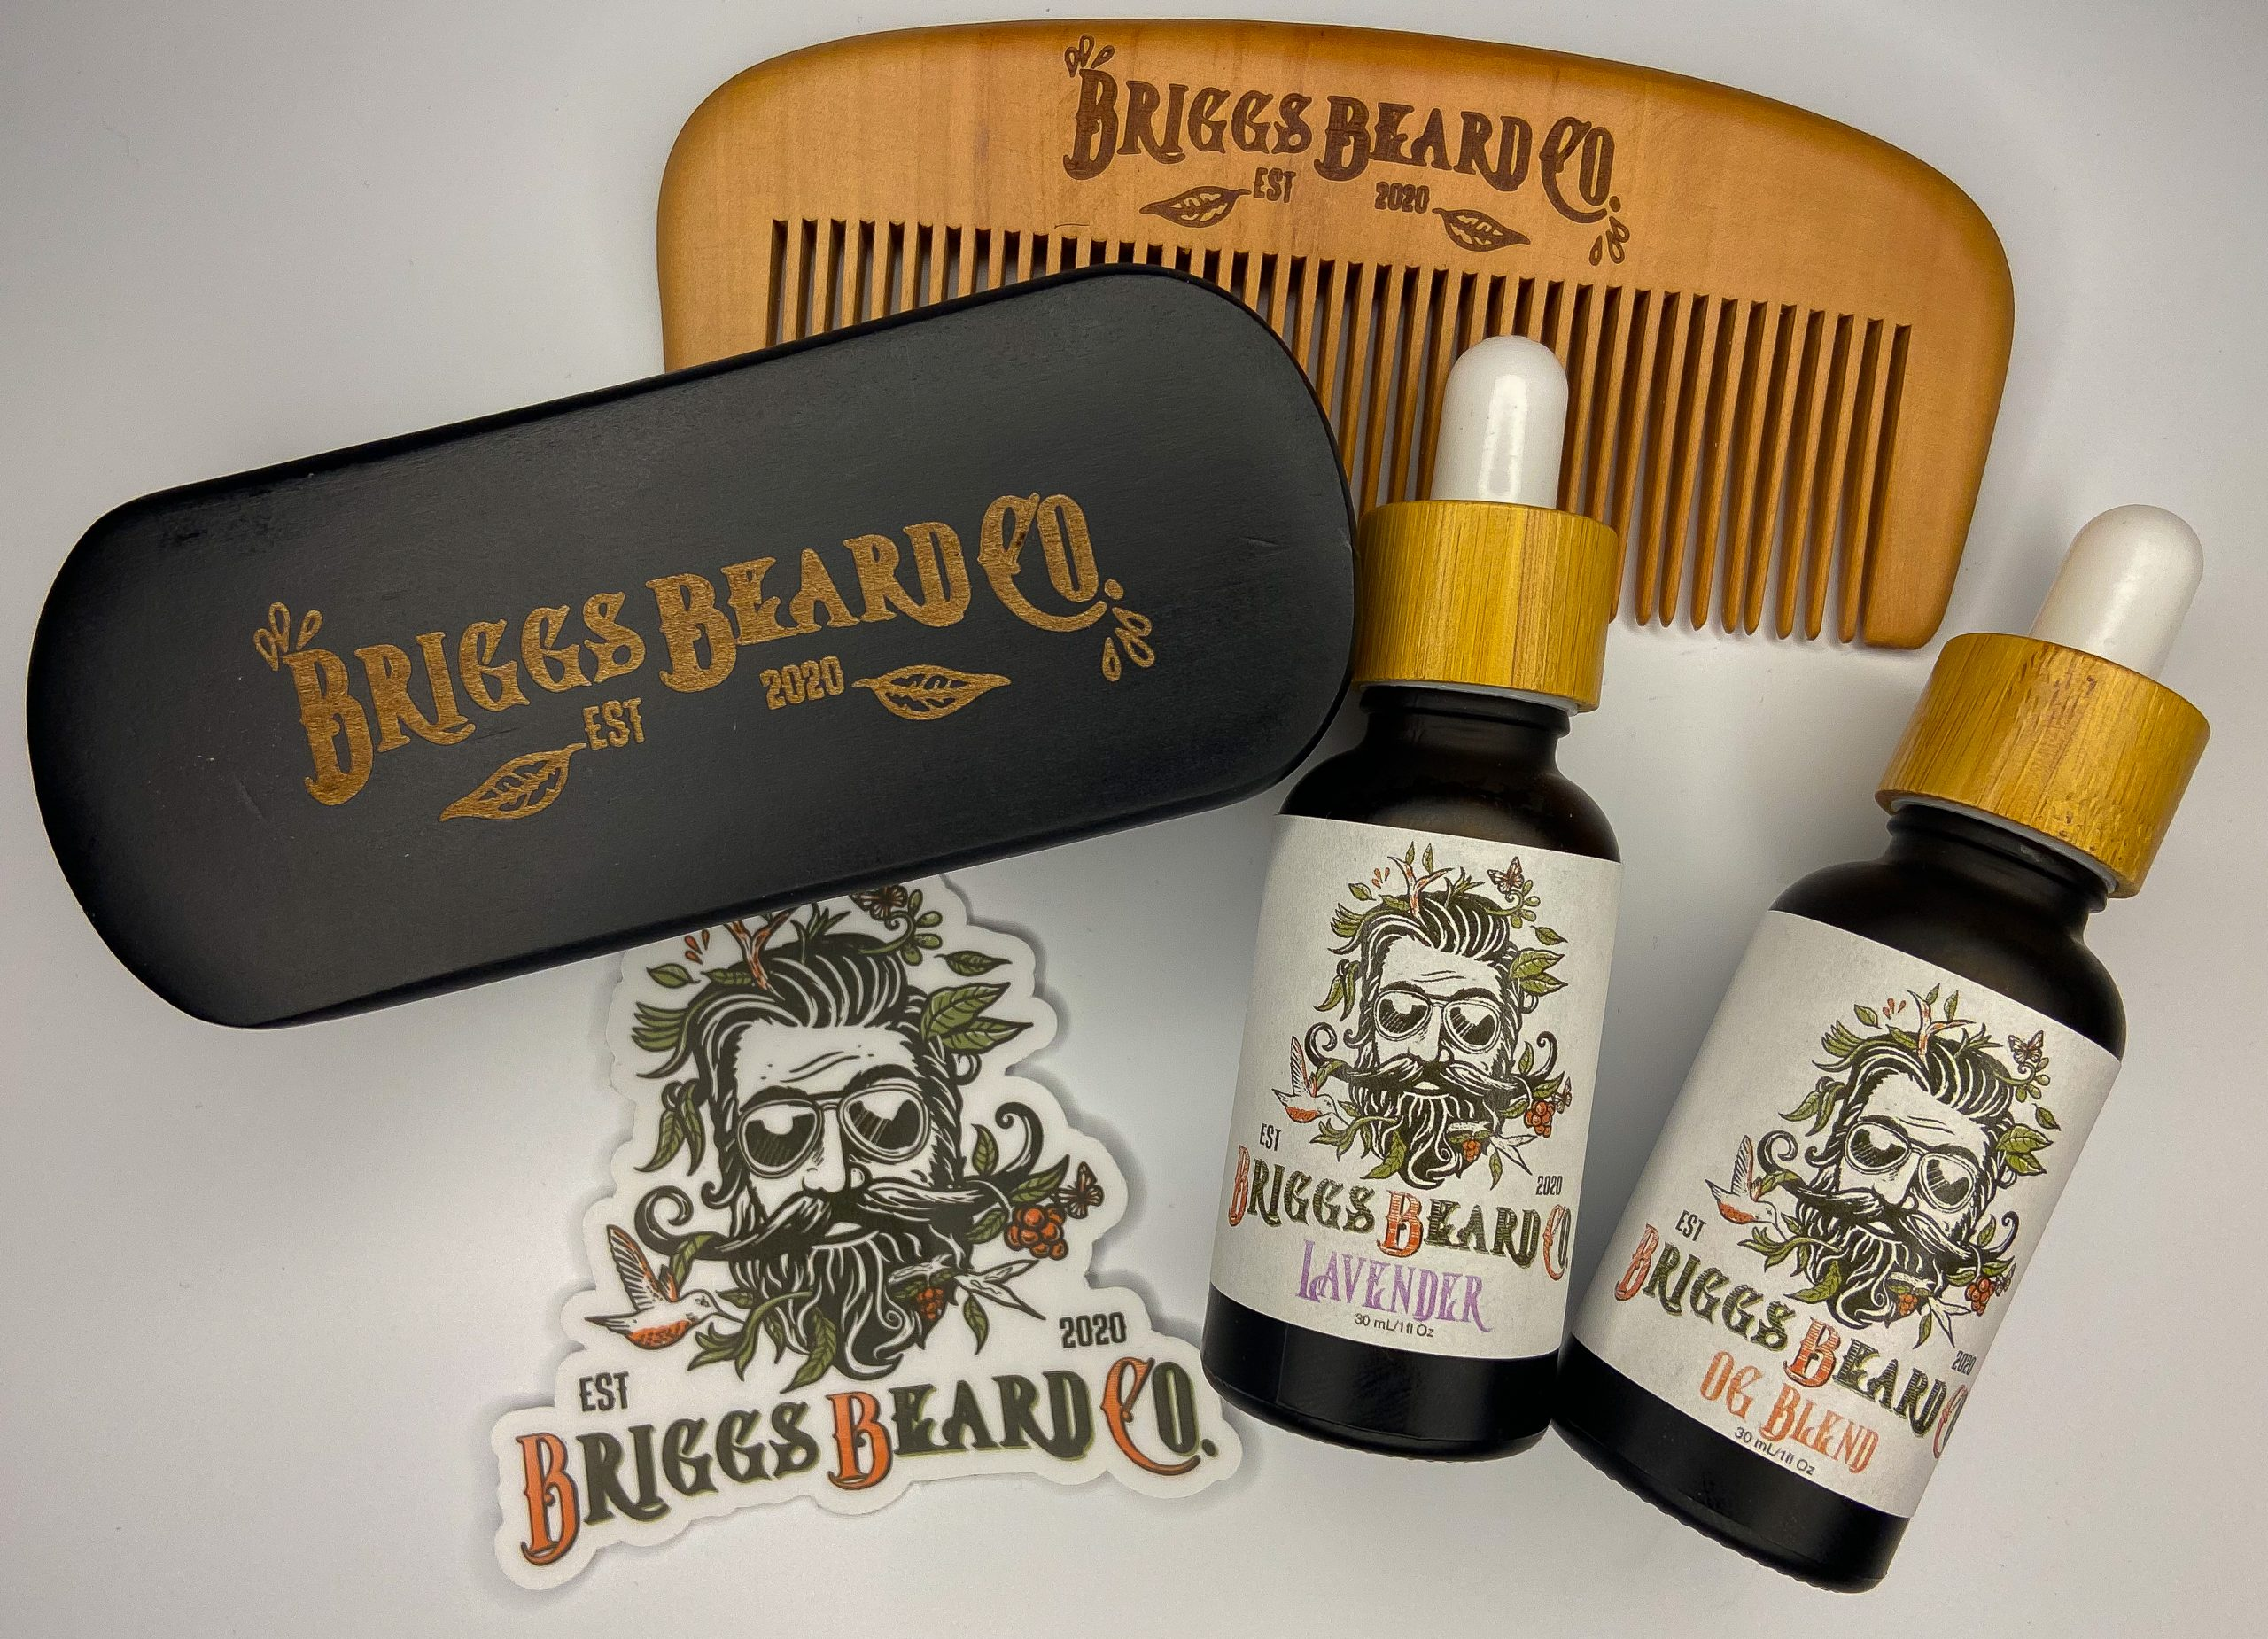 Briggs Beard Care bundle on a white background